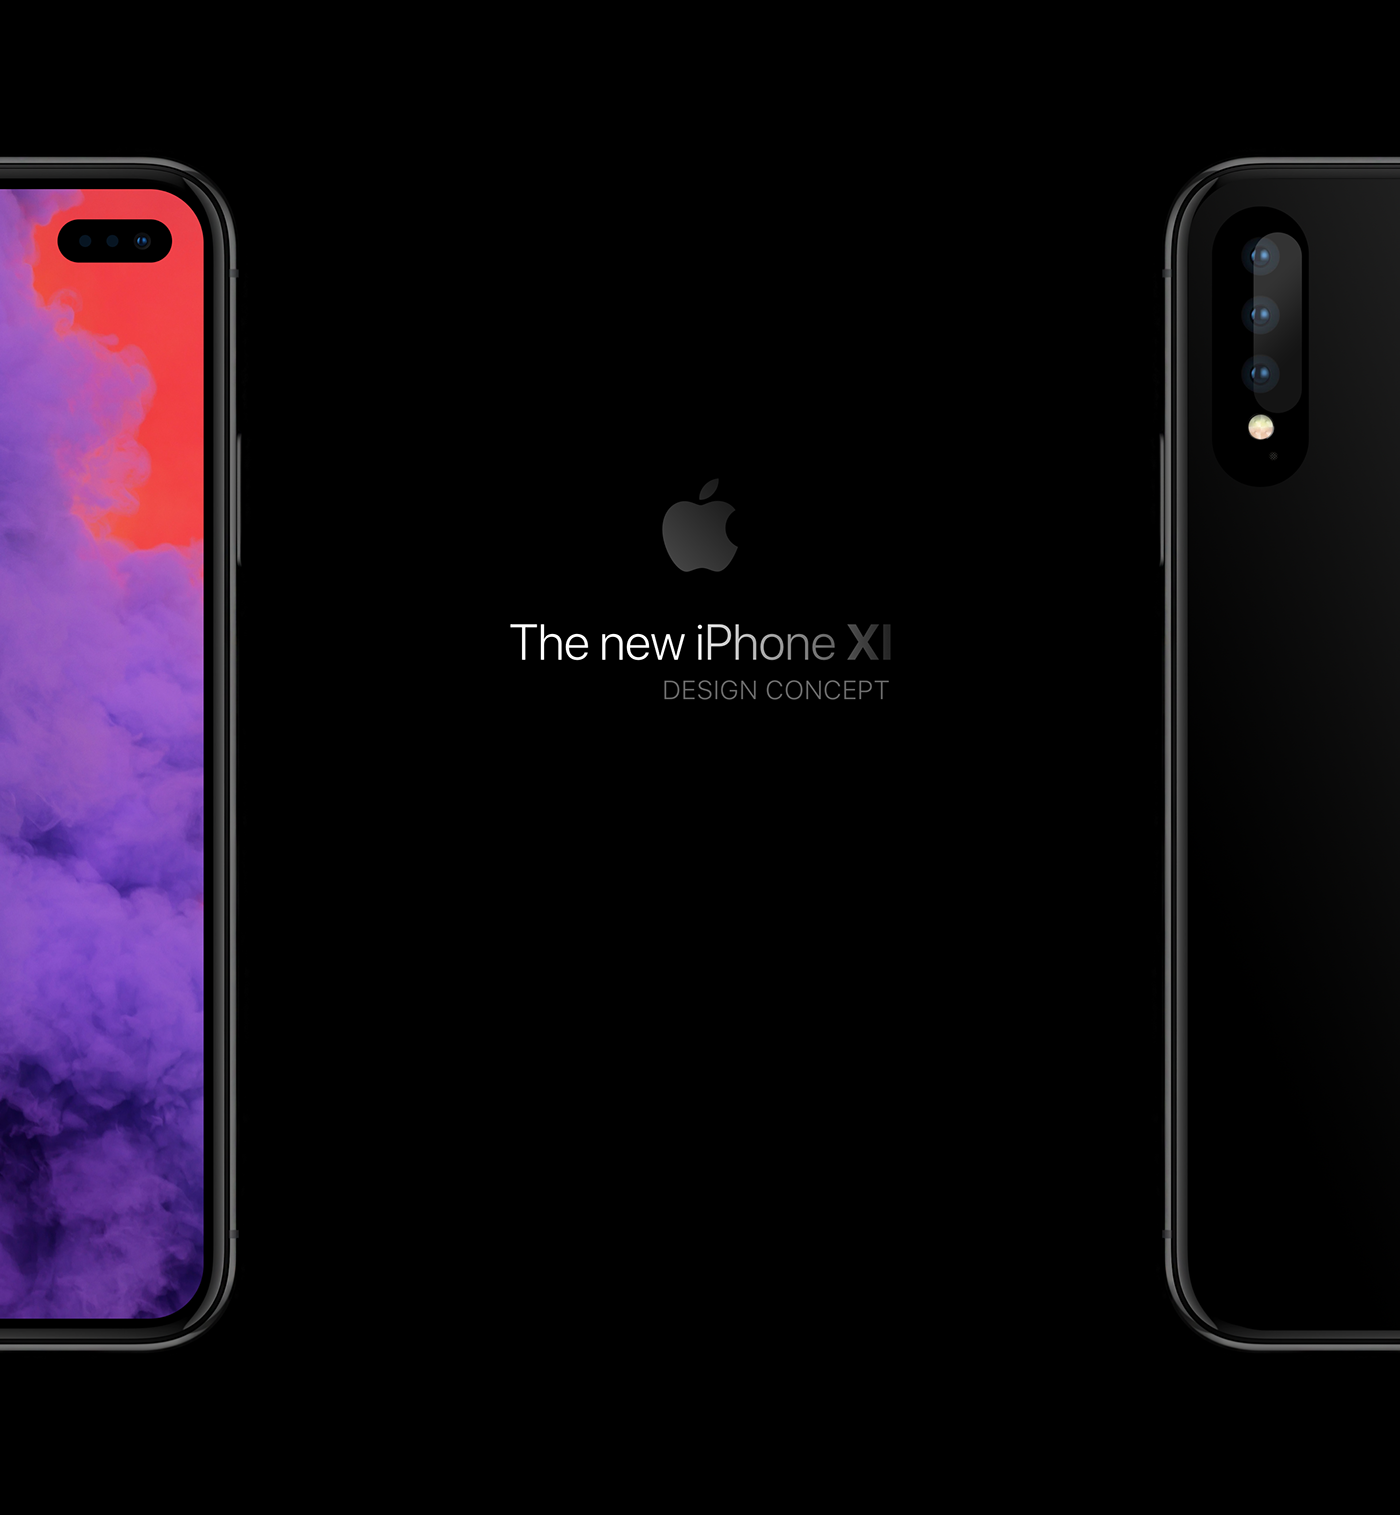 Concept a notch,less iPhone with a hole punch display and a